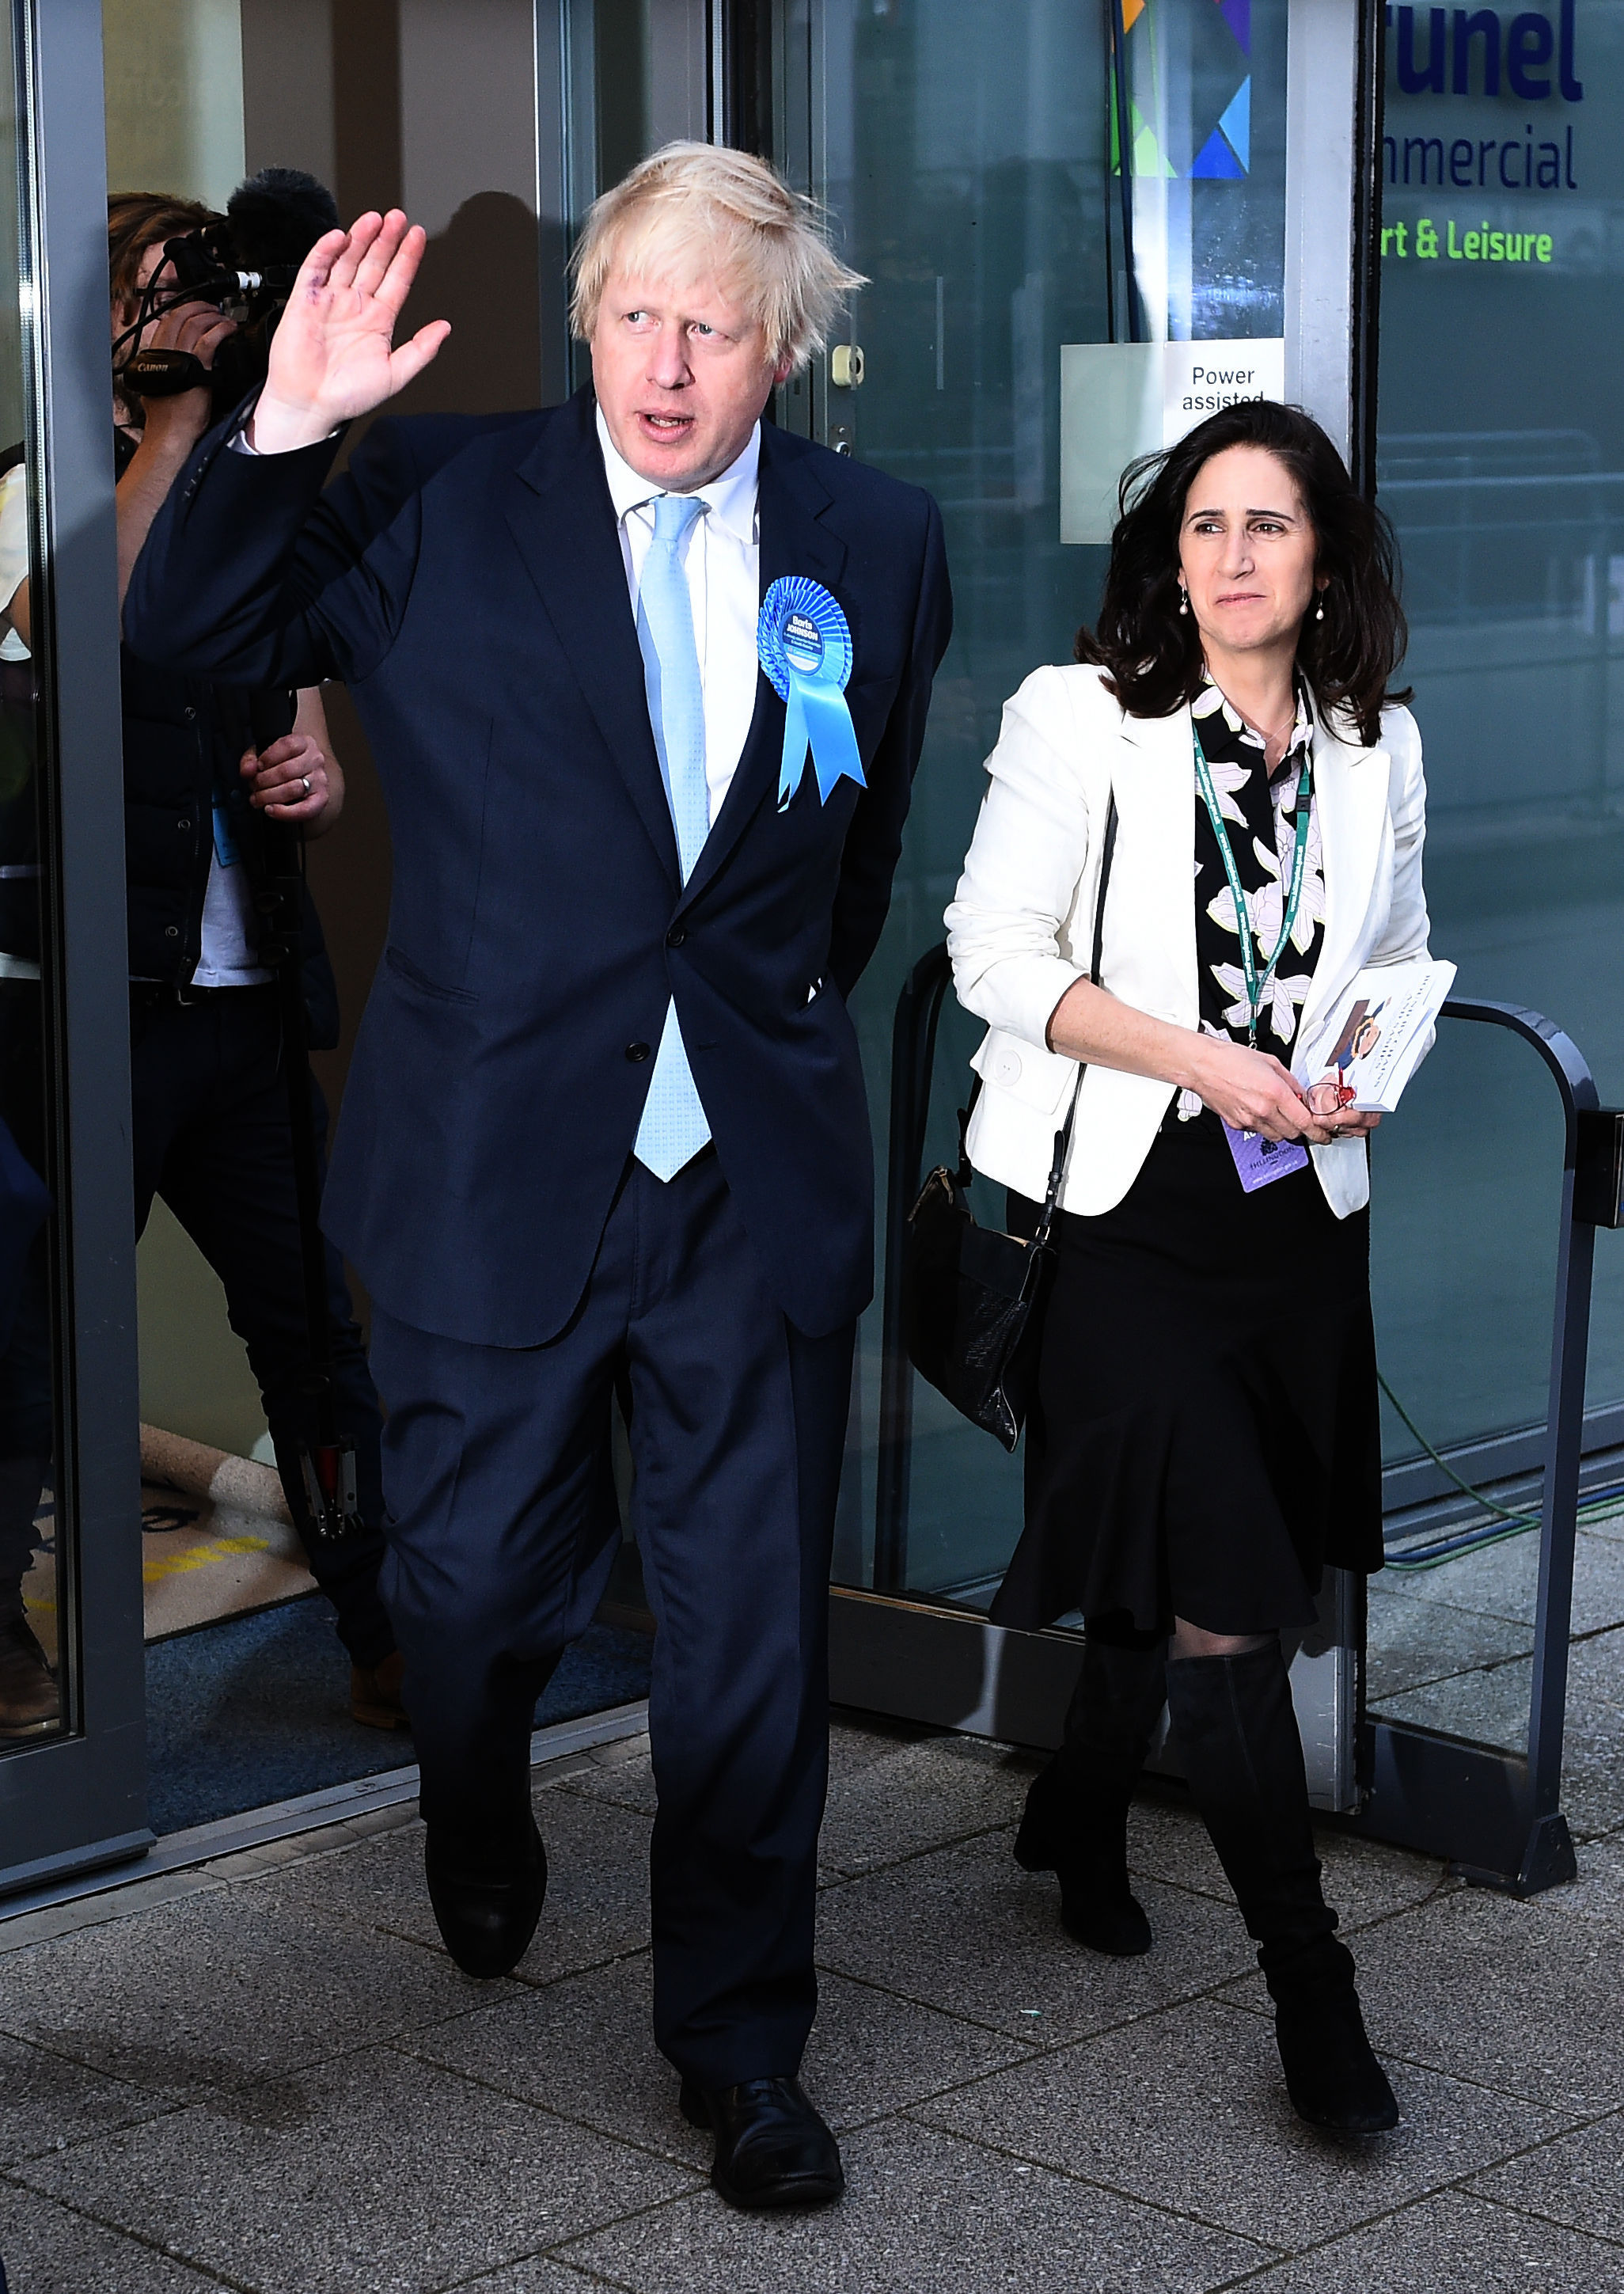 Mayor of London and Conservative MP for Uxbridge and South Ruislip Boris Johnson leaves Brunel University with his wife Marina after the General Election count.